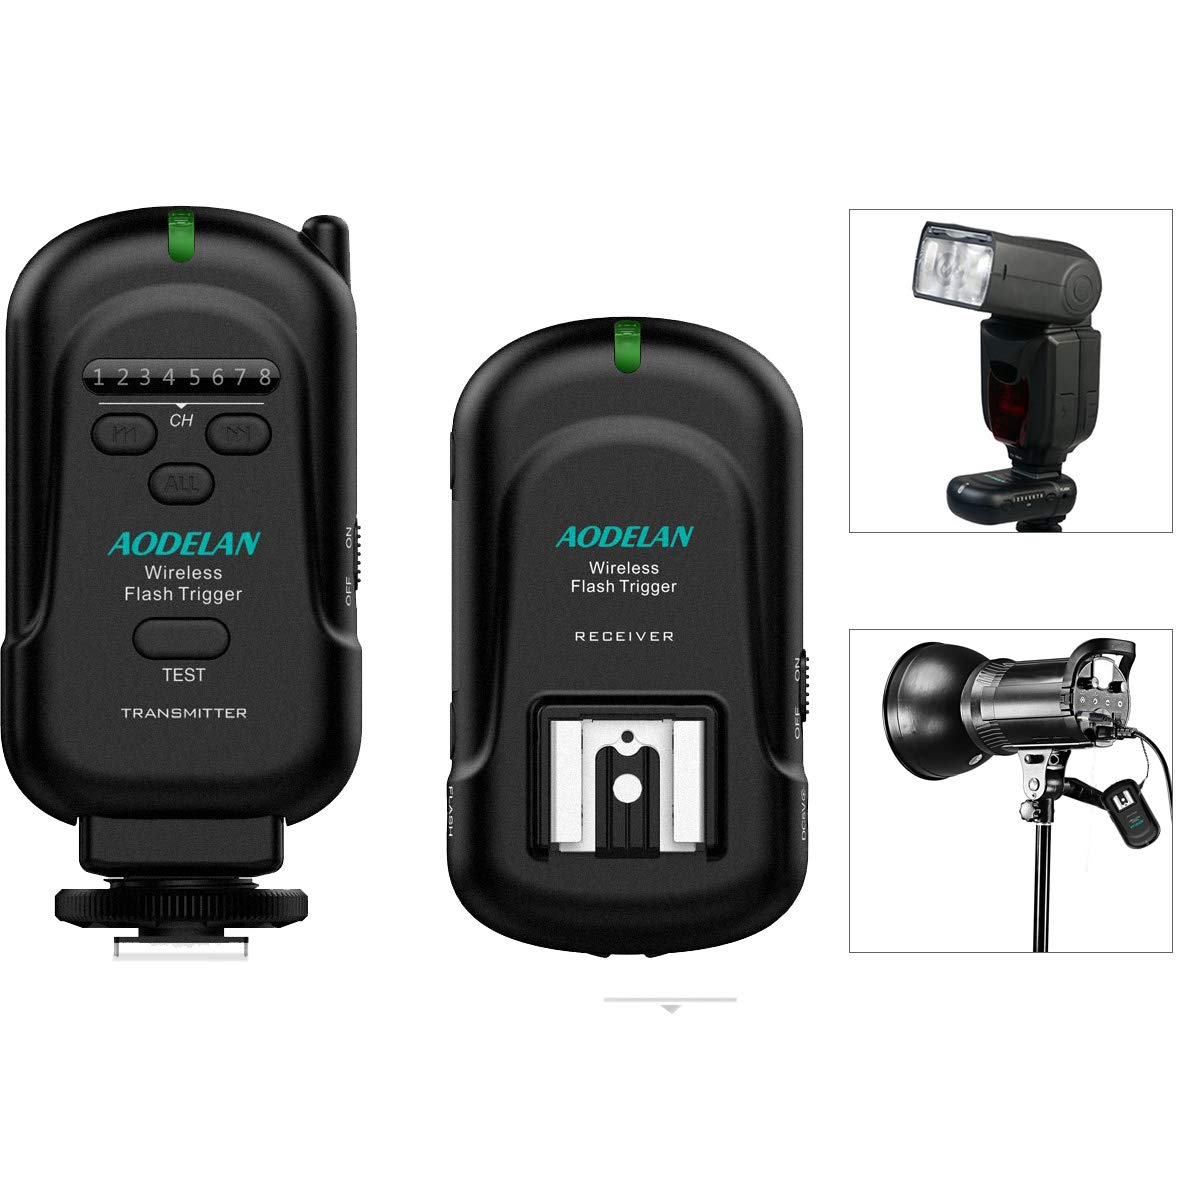 AODELAN Wireless Flash Trigger Transmitter and Receiver 2.4 GHz Frequency for Canon, Nikon, Olympus, Panasonic, Pentax, Fuji, Samsung,Sony(Except Sony Flashes) by AODELAN